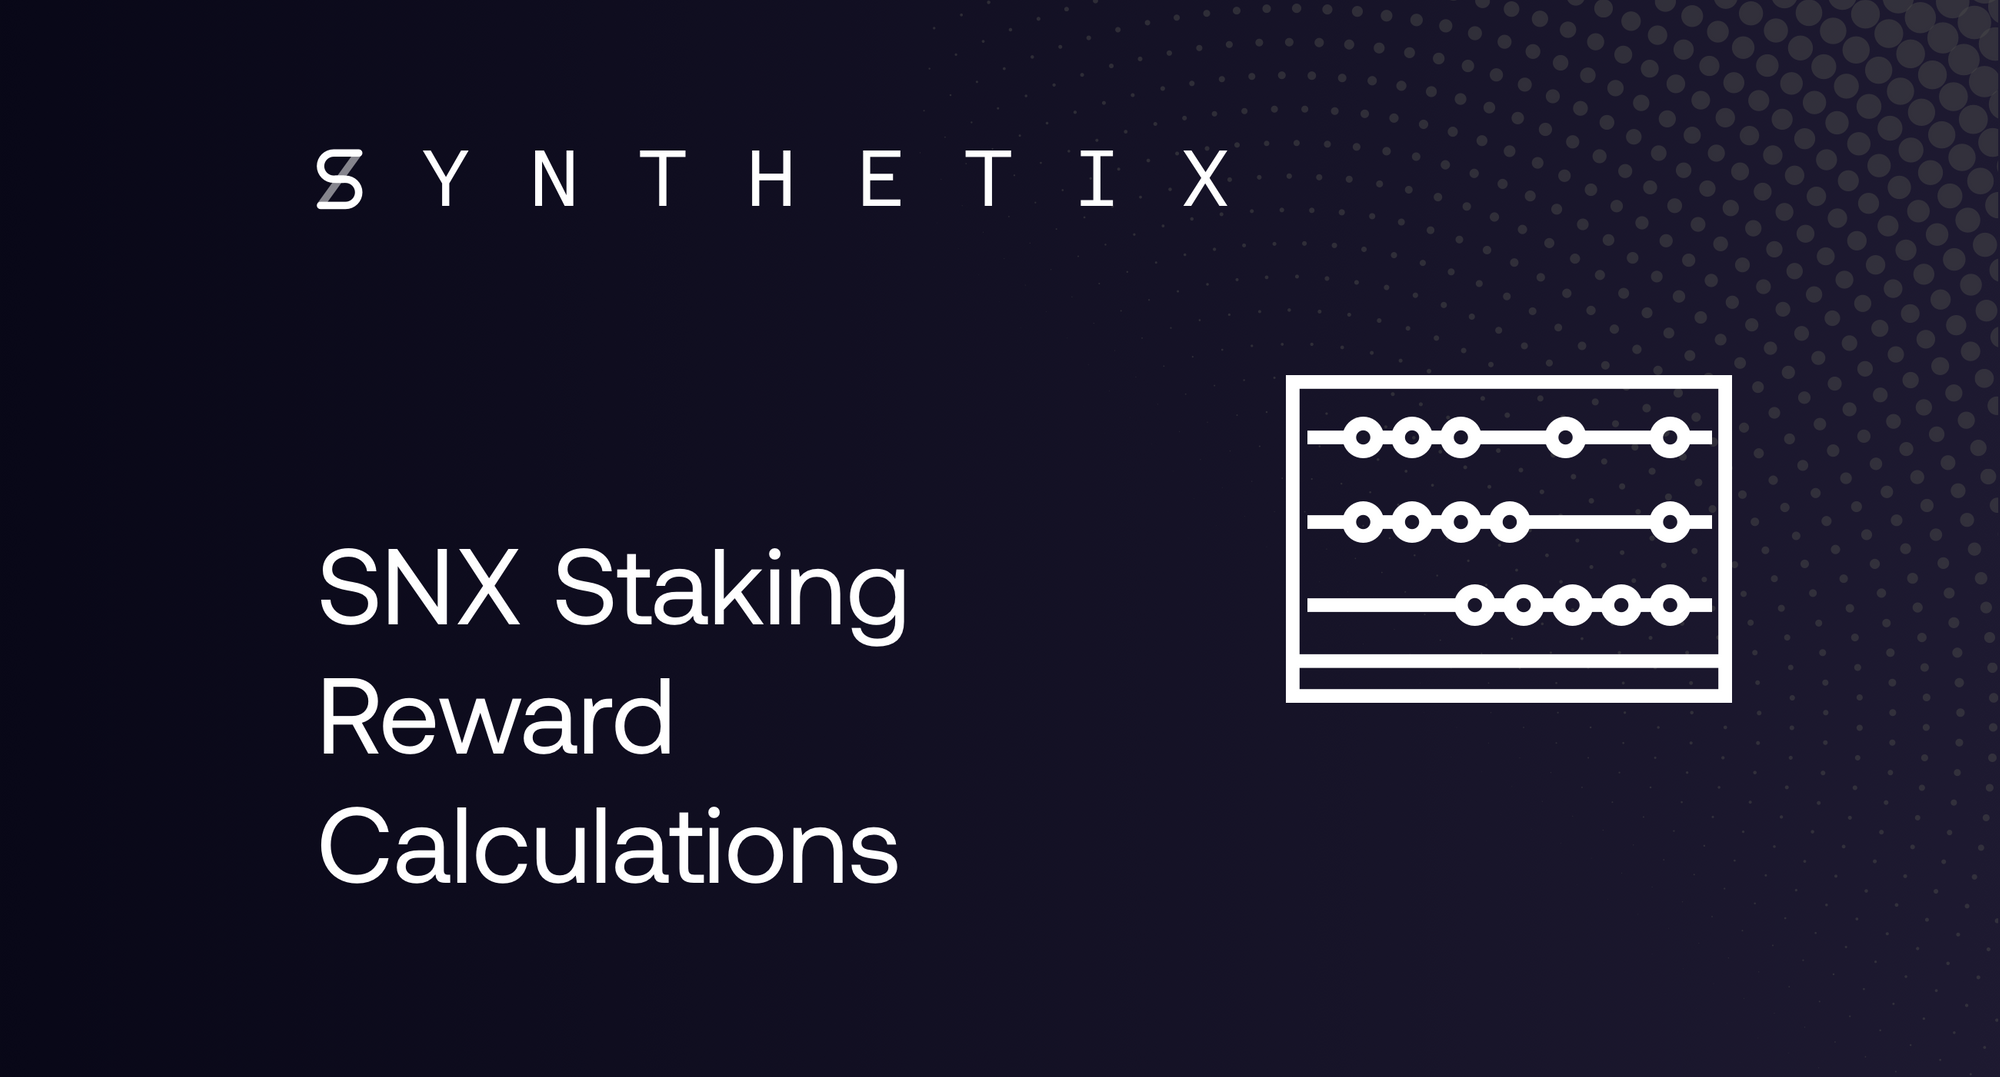 SNX Staking Reward Calculations